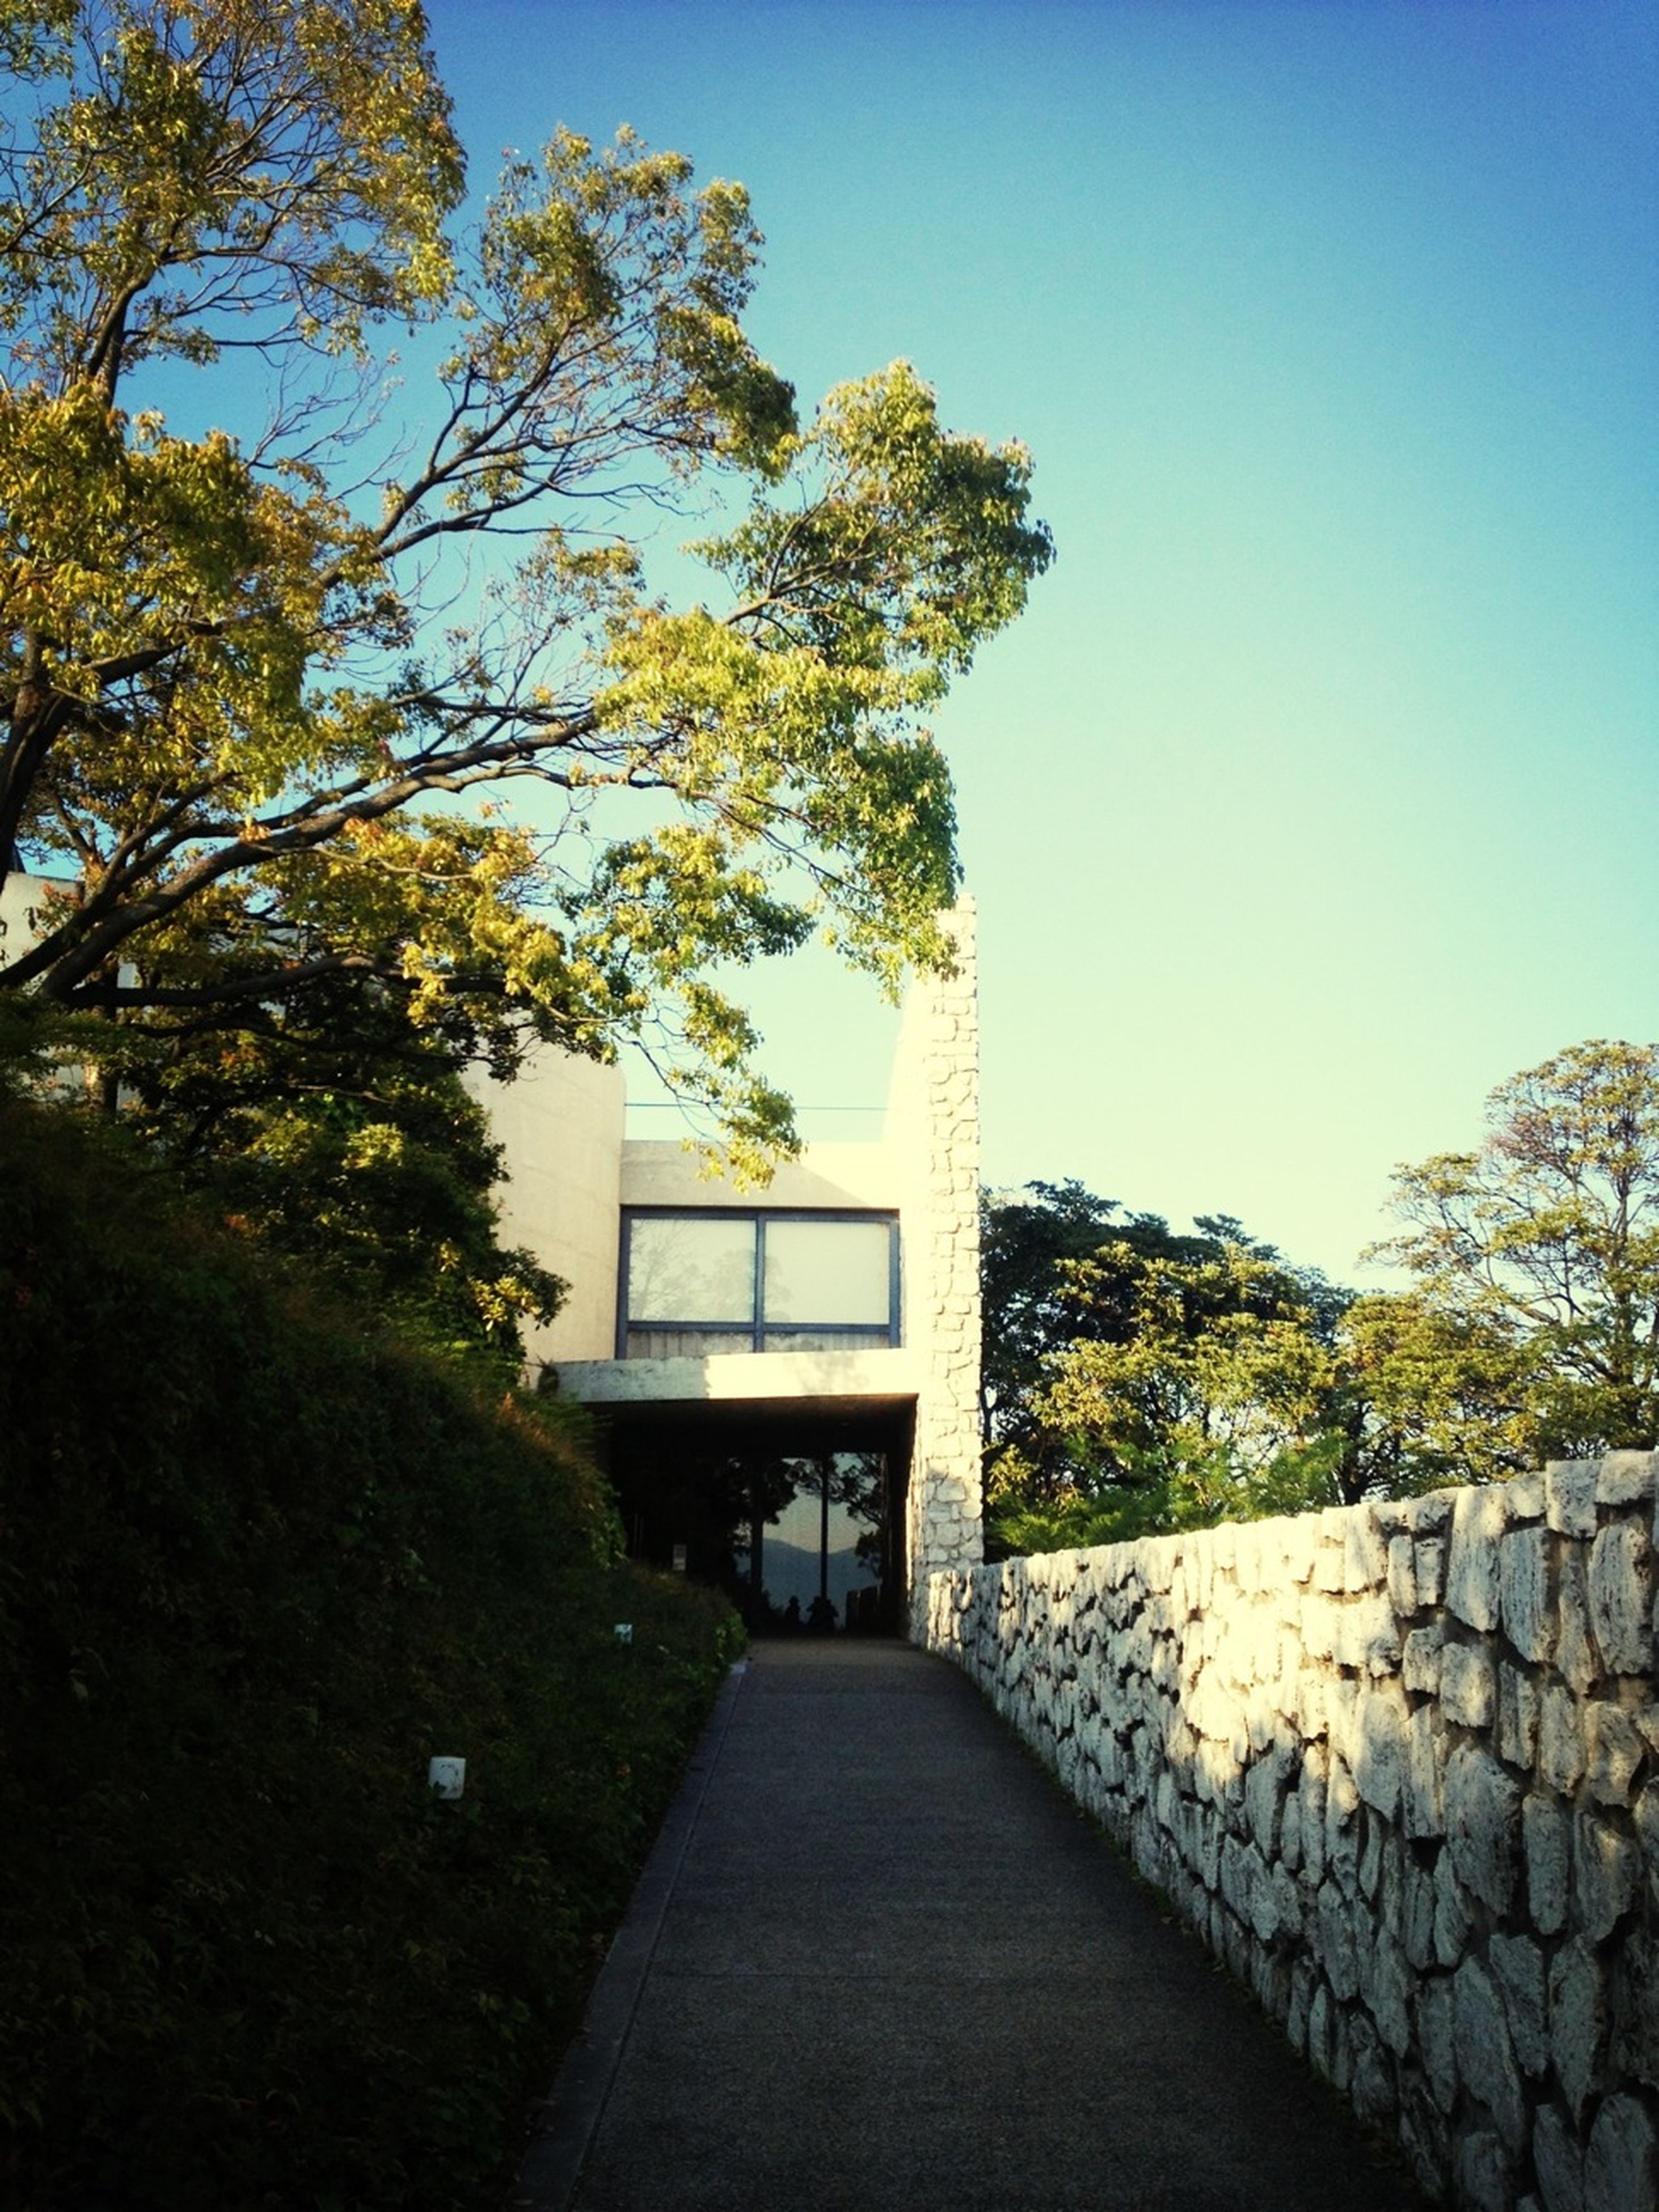 built structure, architecture, the way forward, tree, building exterior, clear sky, walkway, footpath, leading, narrow, pathway, sunlight, diminishing perspective, plant, house, day, blue, empty, no people, stone wall